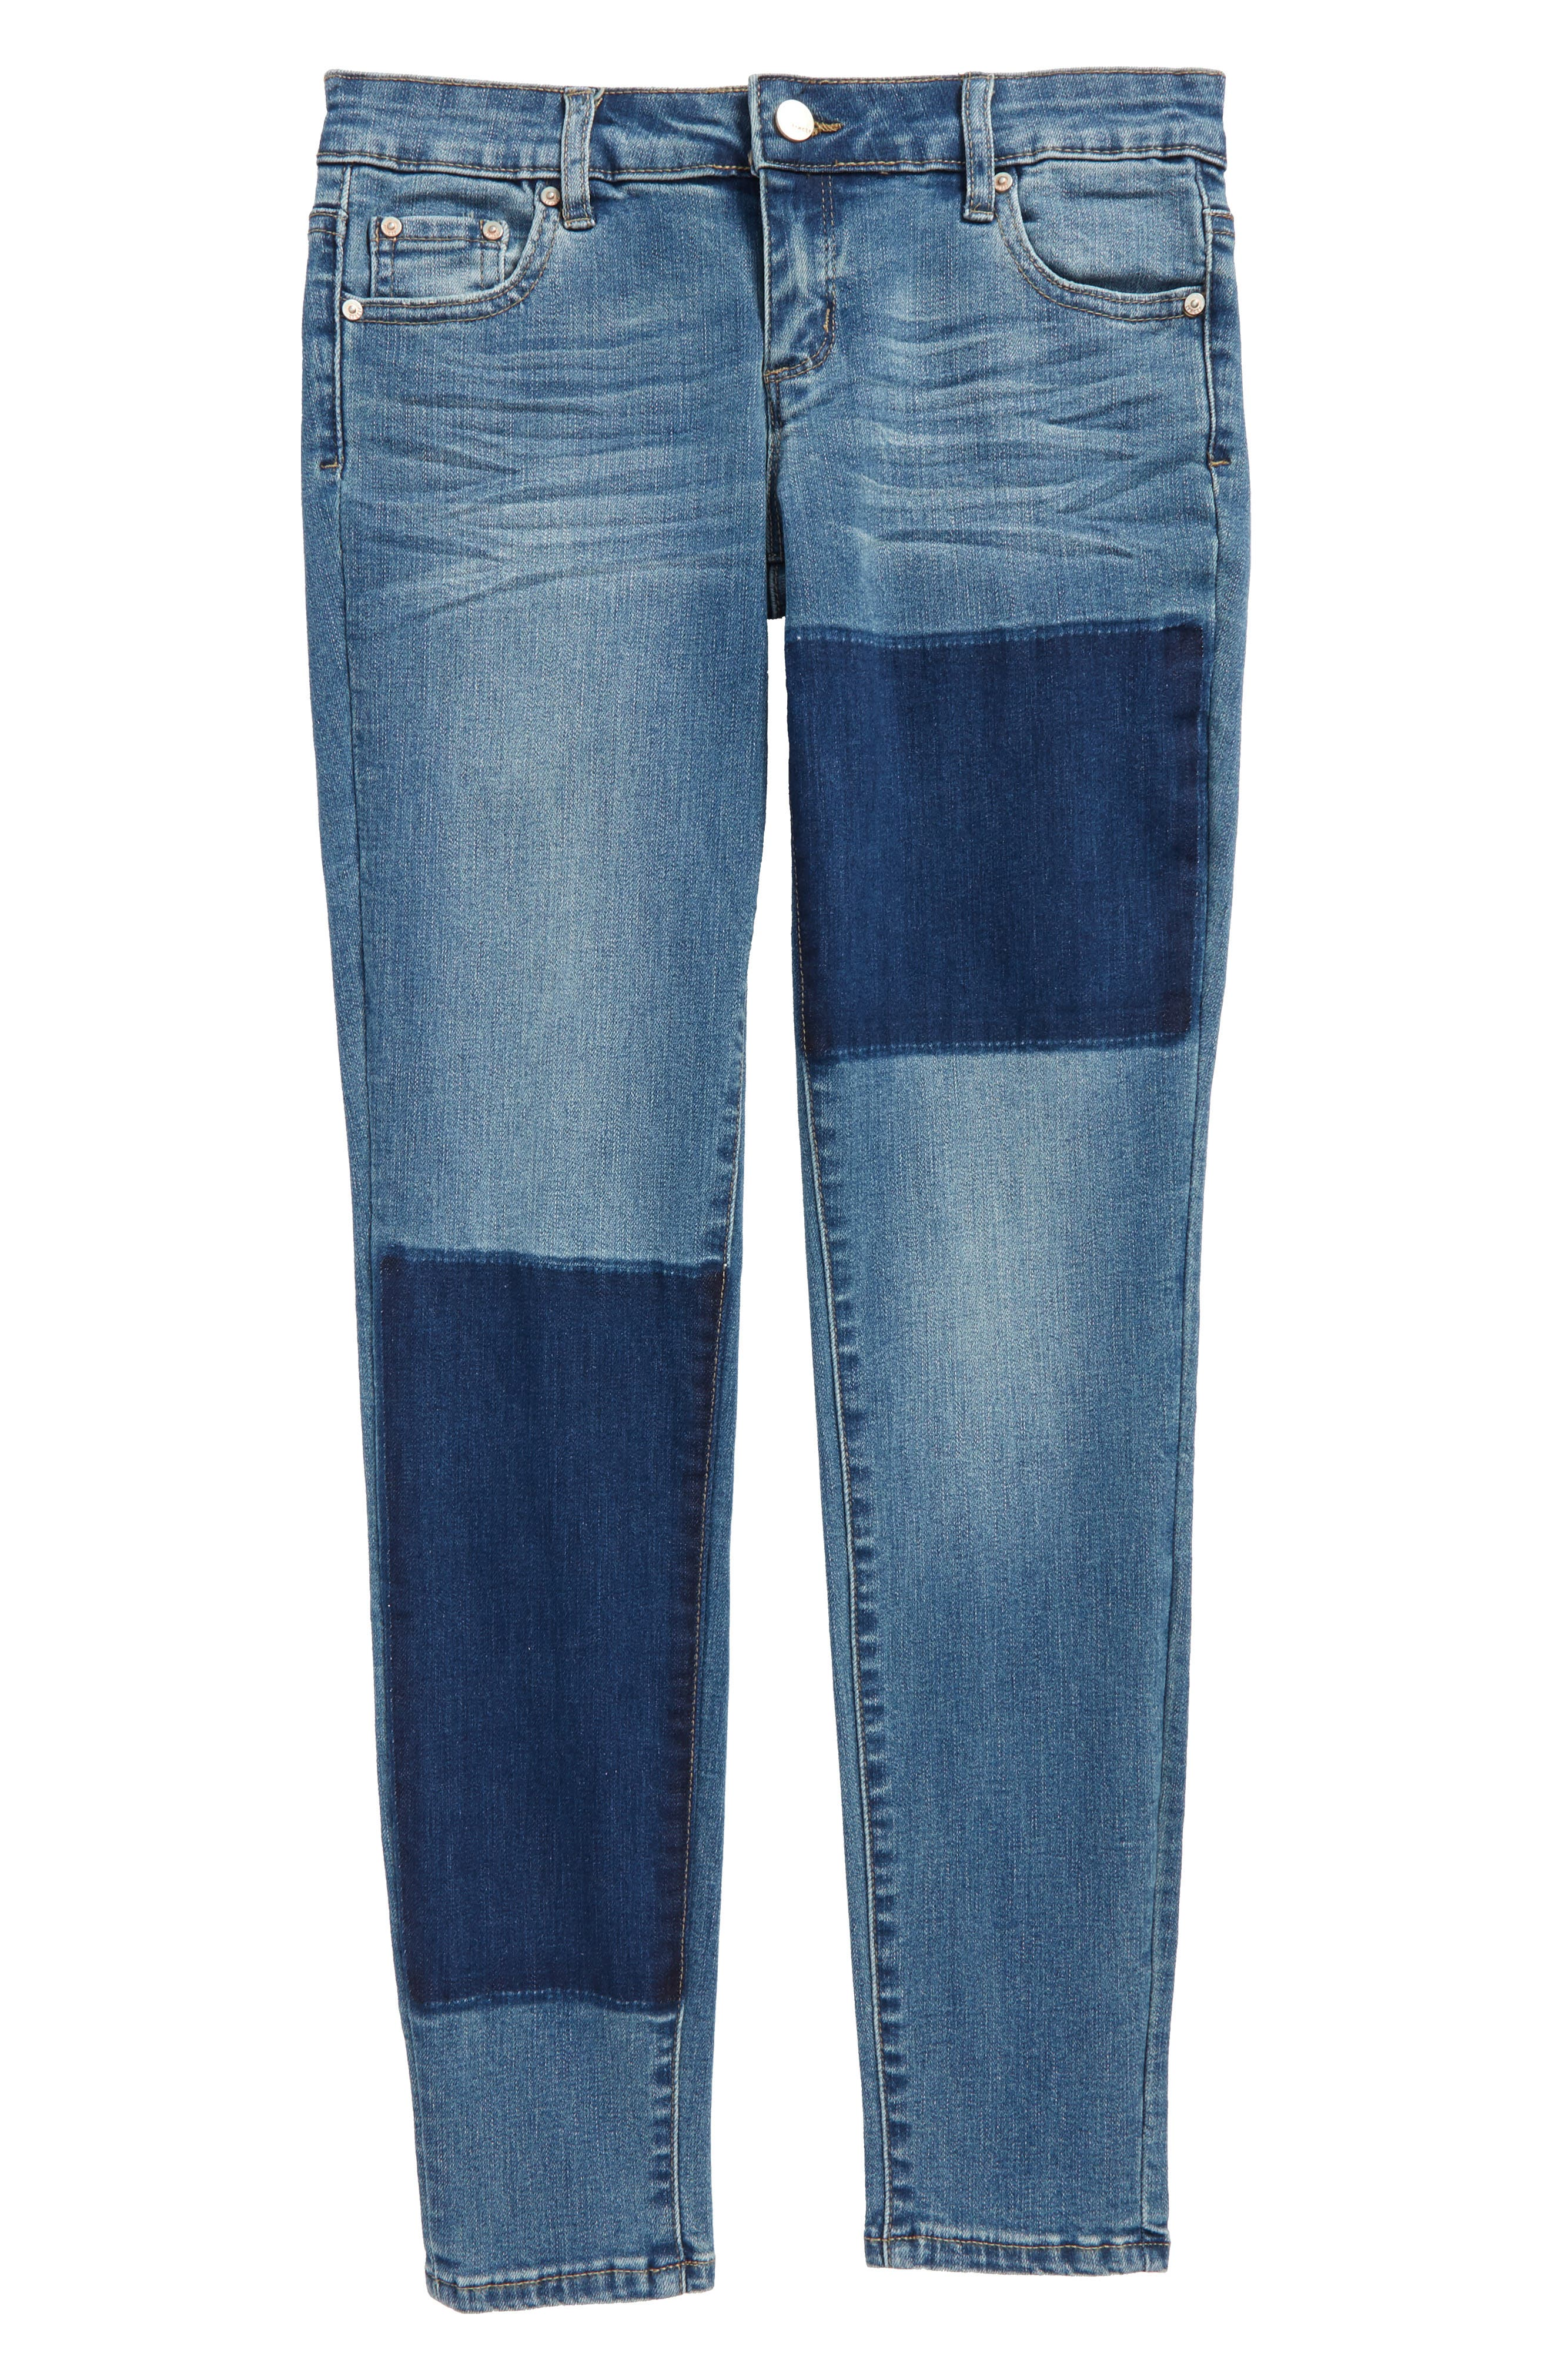 Patch Ankle Skinny Jeans,                             Main thumbnail 1, color,                             Indigo